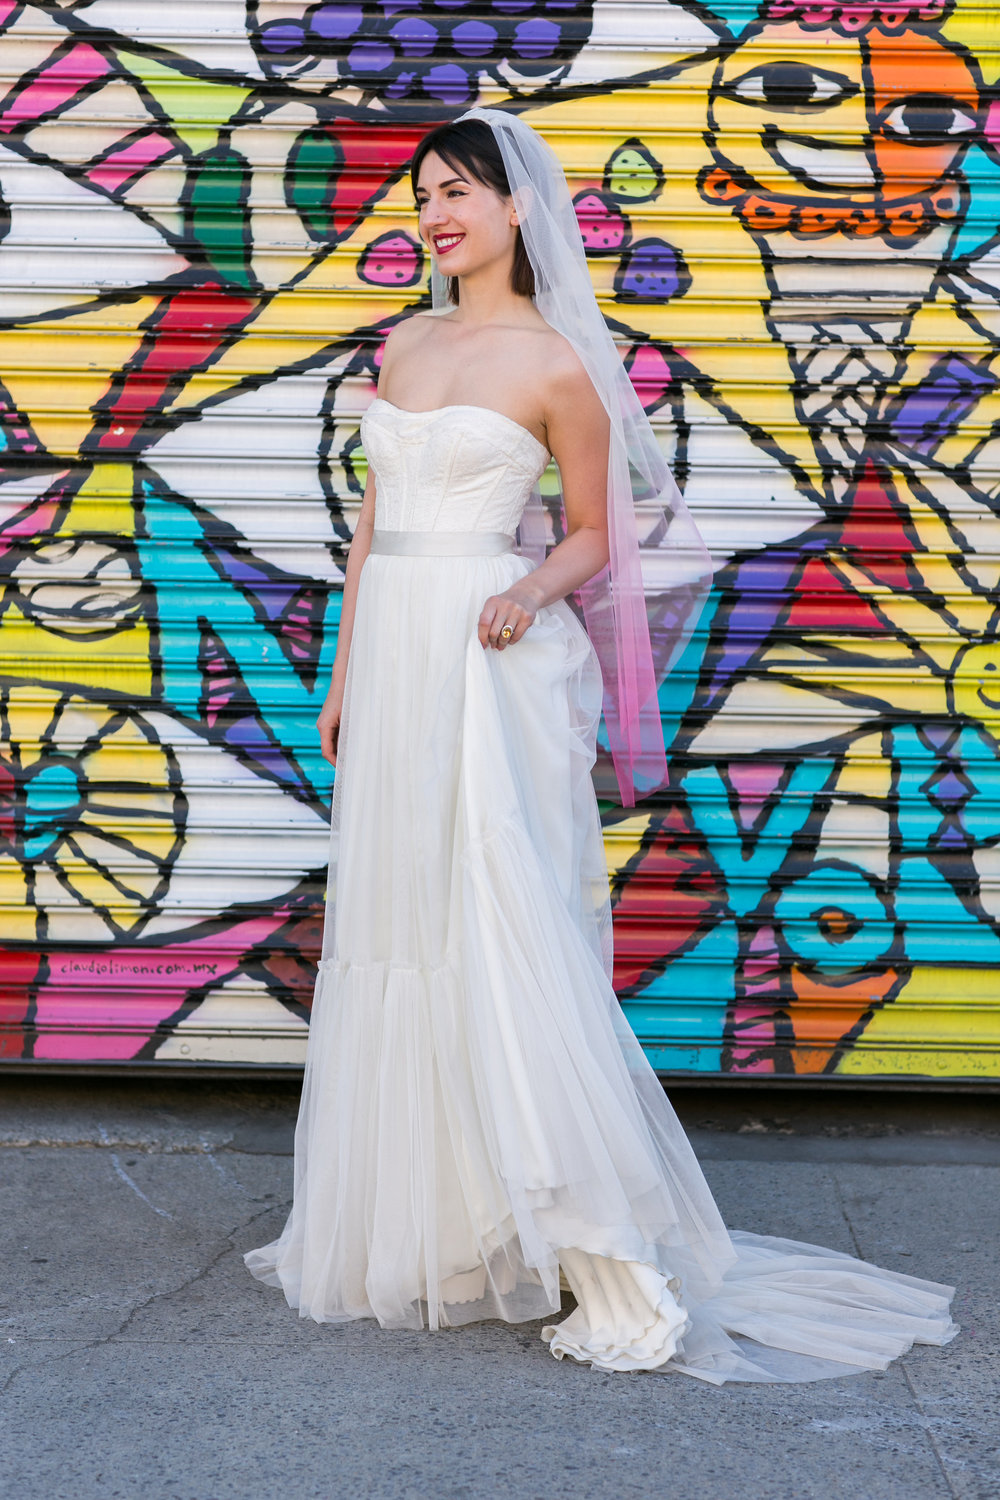 027_NYC-wedding-photographer-Amber-Marlow.jpg